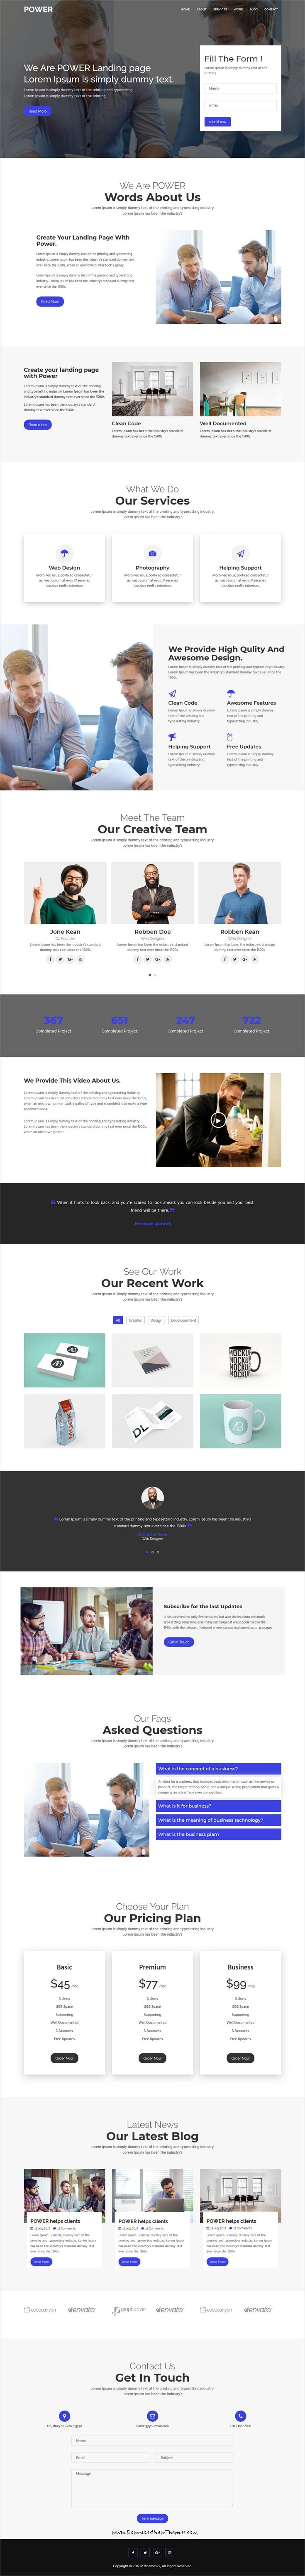 Power is clean and modern parallax design 6in1 responsive #bootstrap HTML template for onepage creative #business #website to live preview & download click on Visit